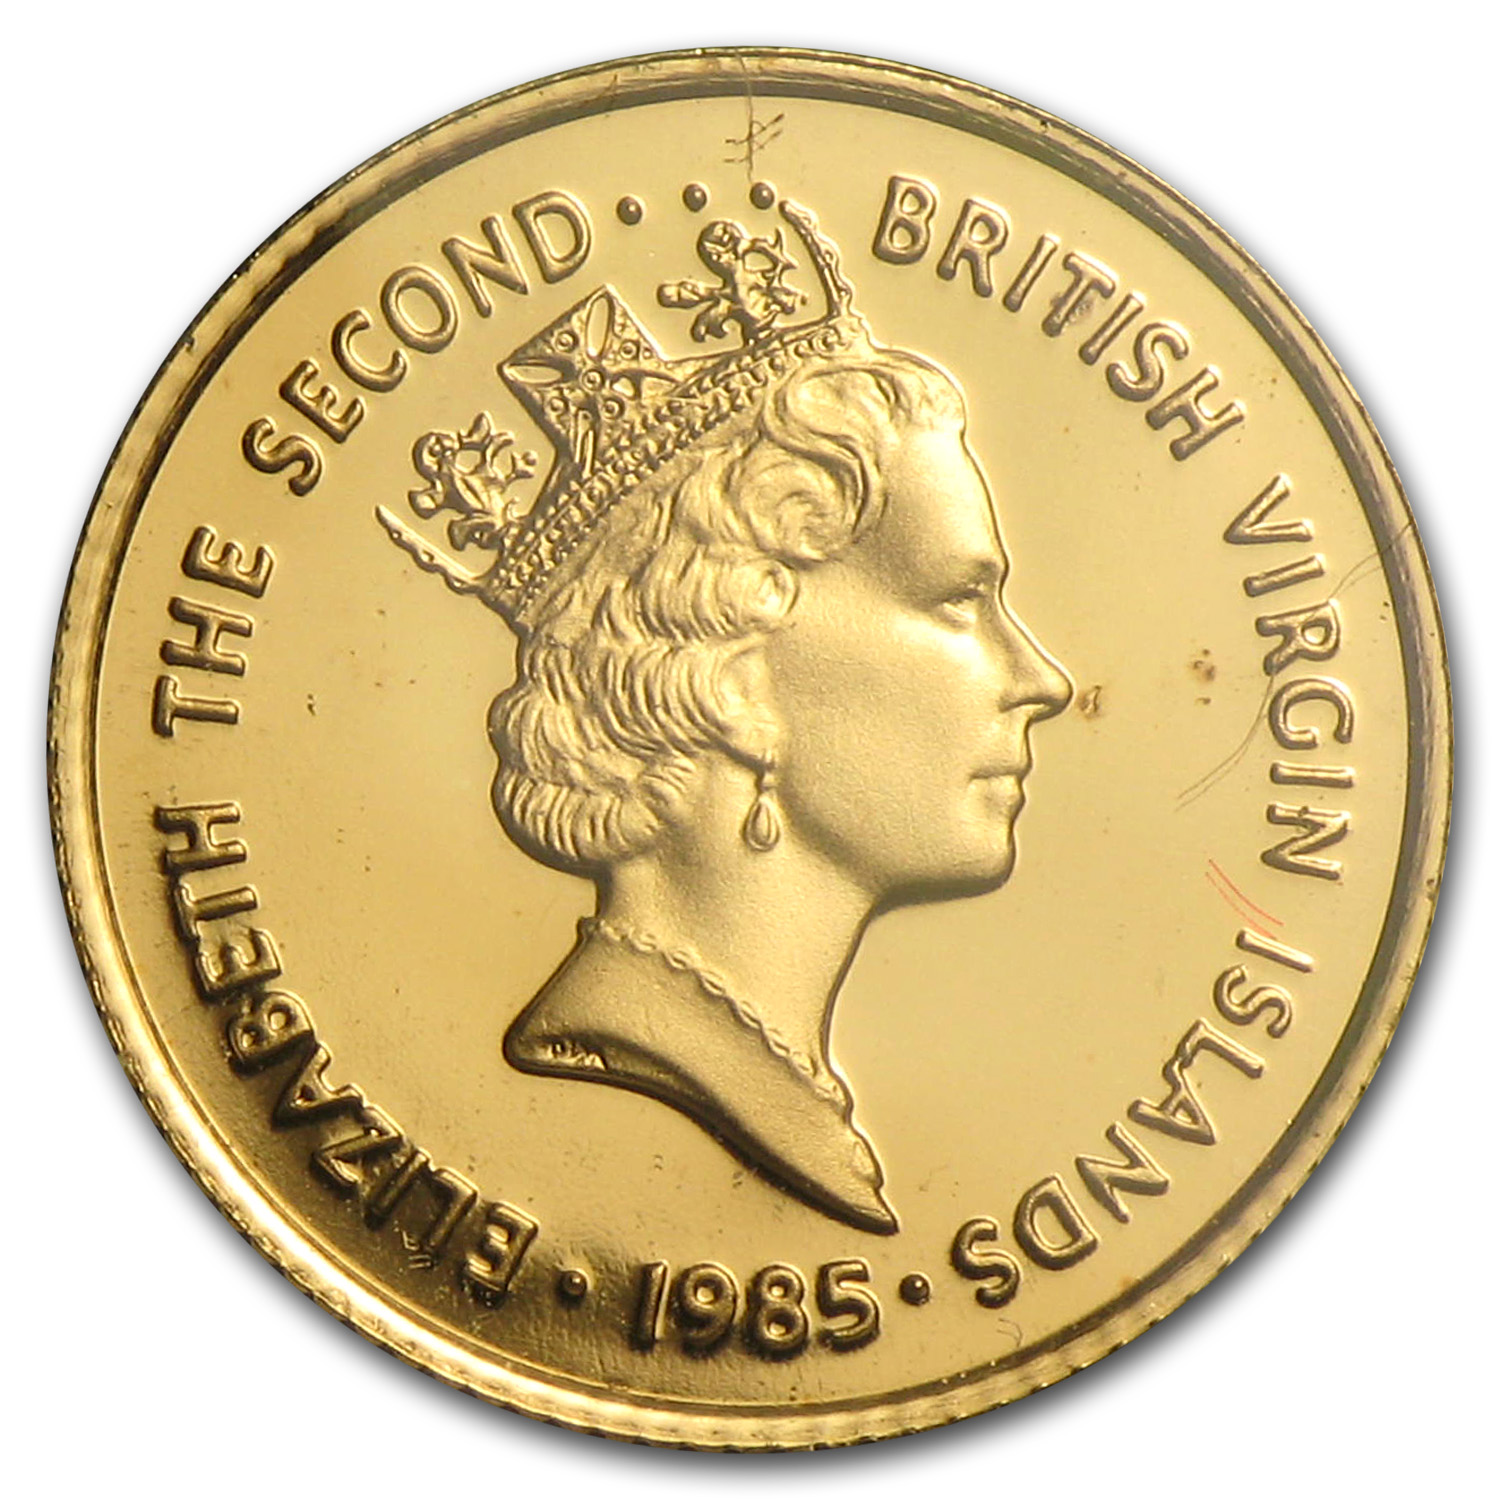 1985 British Virgin Islands Proof Gold 25 Dollars